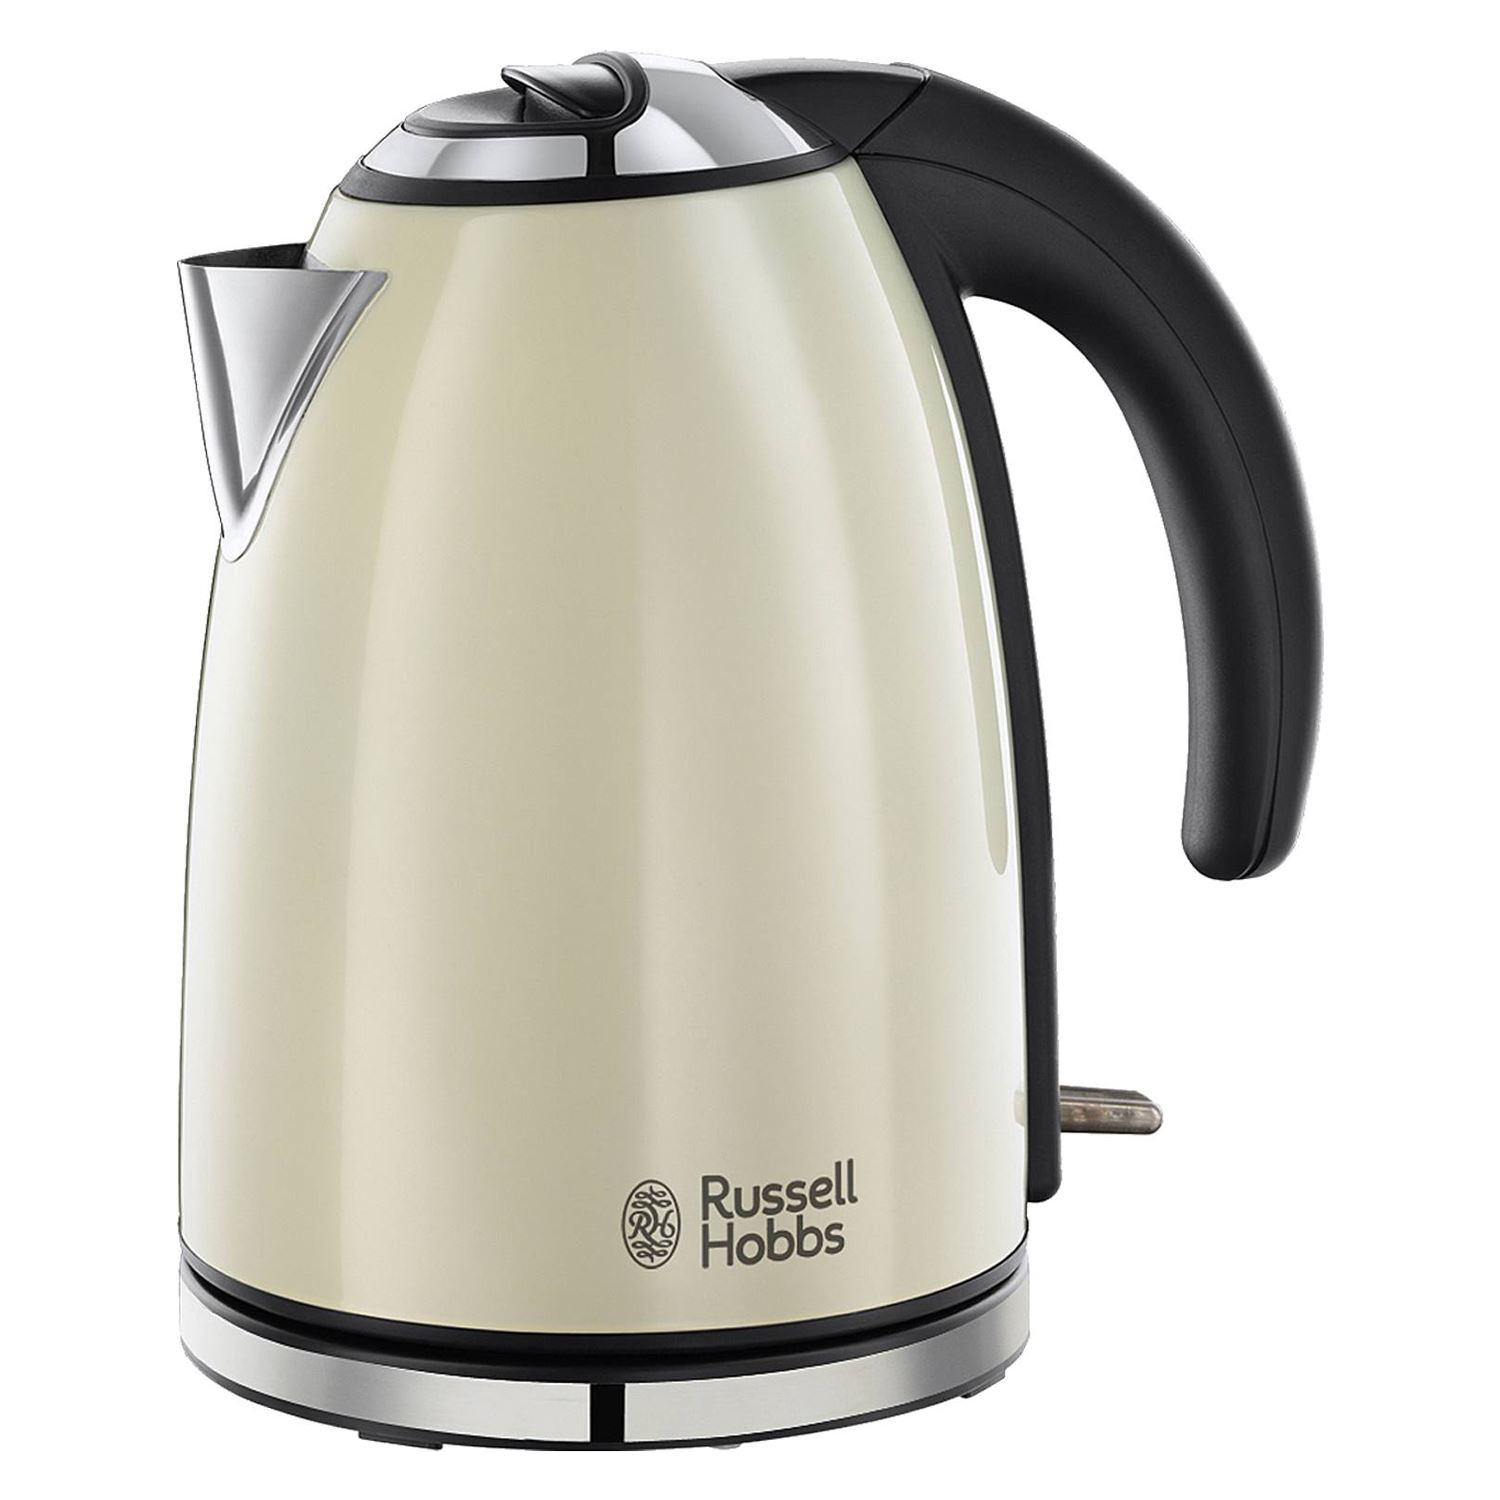 russell hobbs 18943 cream electric 1 7l stainless steel. Black Bedroom Furniture Sets. Home Design Ideas